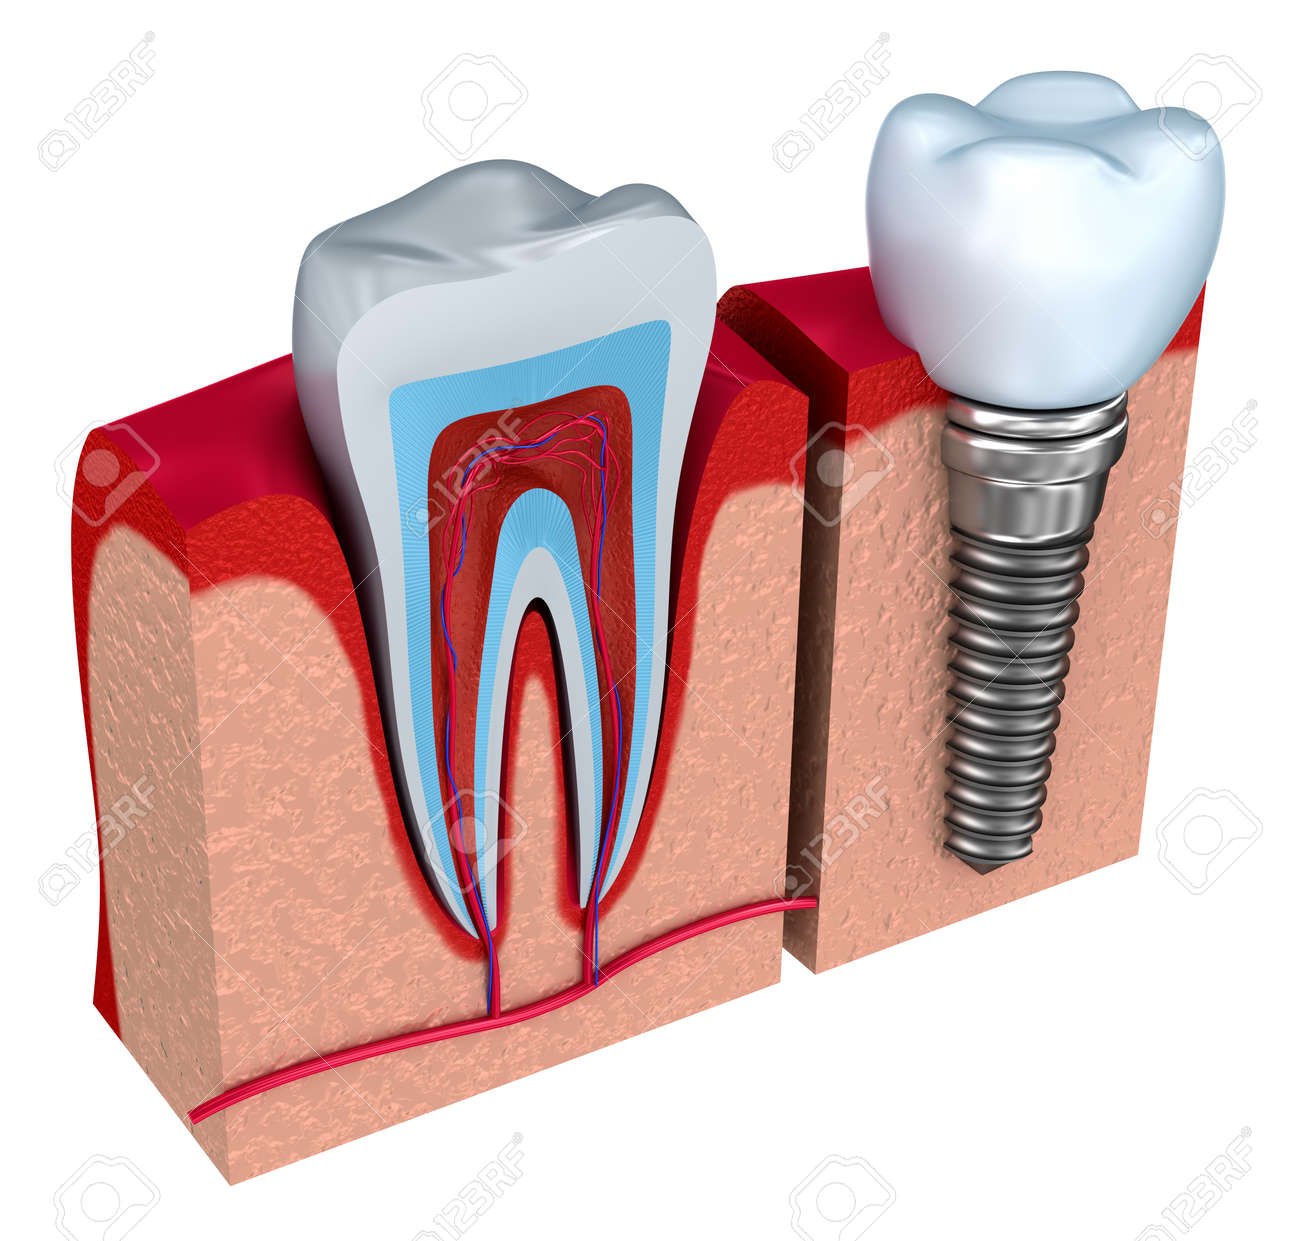 Anatomy Of Healthy Teeth And Dental Implant In Jaw Bone. Stock Photo ...